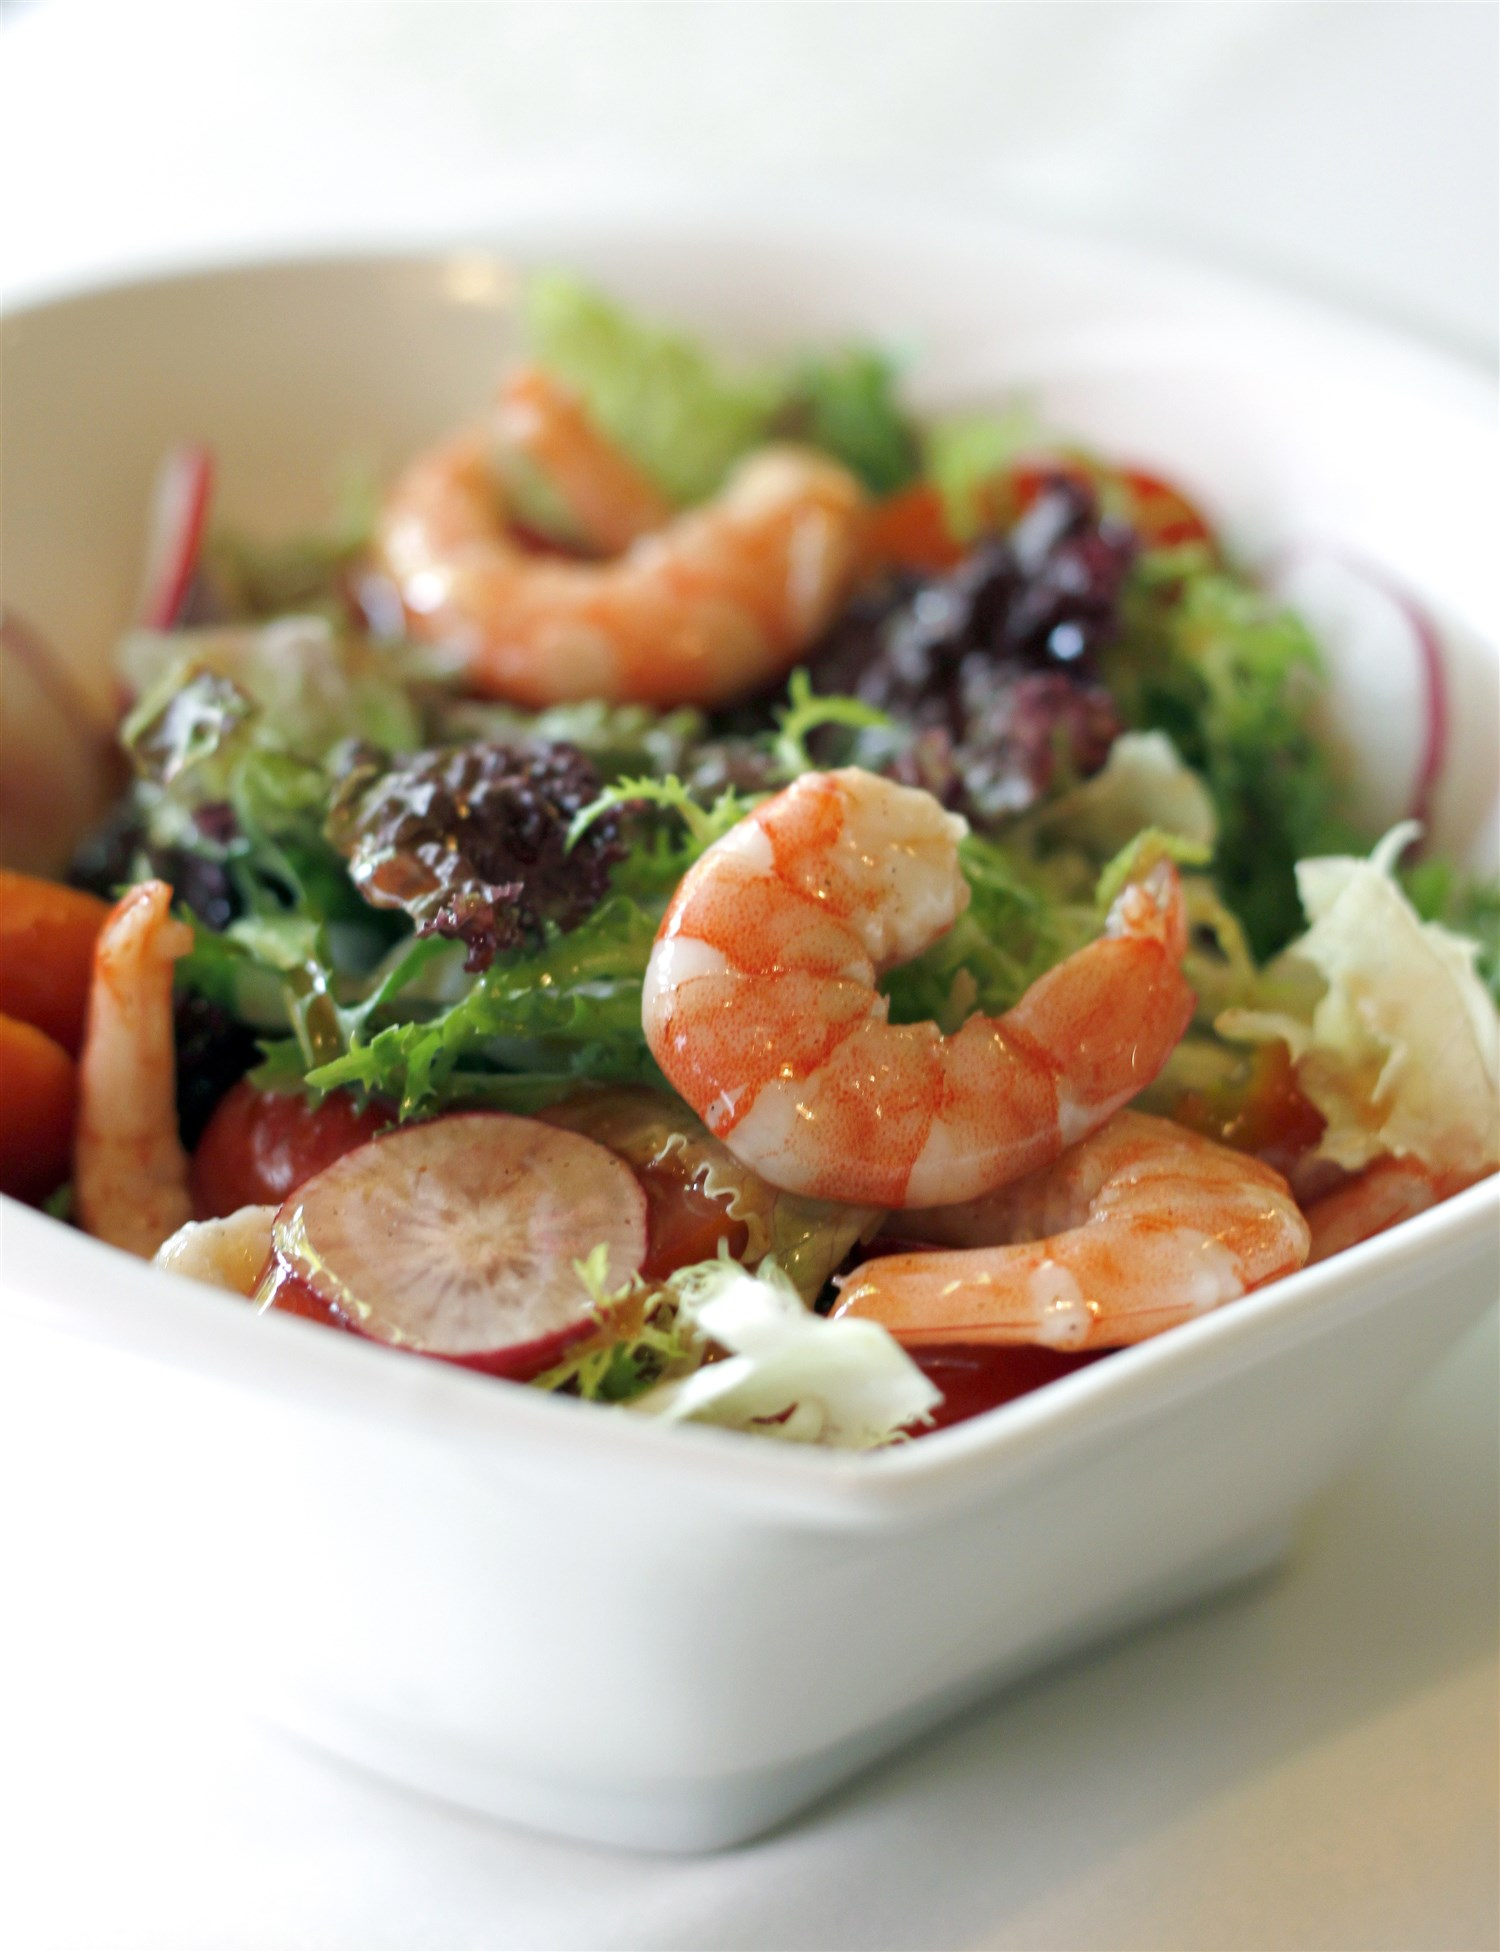 Earl's ,  Firerock  and the  Dubh Linn Gate  all include fresh and inventive meal-sized salads on their menus.  Dreamstime